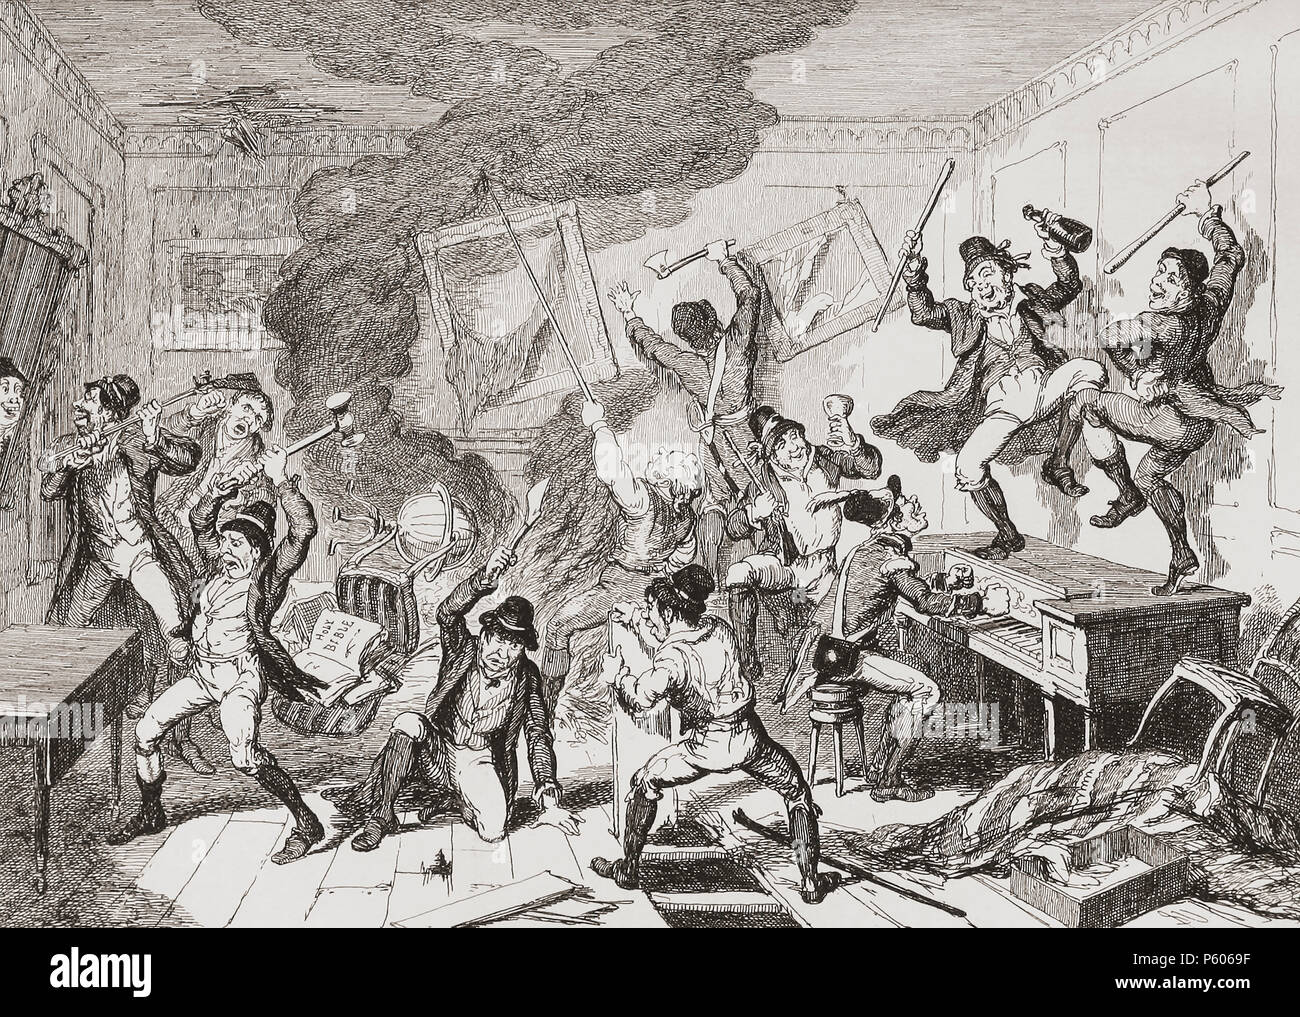 """""""Rebels destroying a house and furniture"""".  Illustration by George Cruikshank.  An incident during the Irish Rebellion of 1798.  Many large houses were destroyed by the rebels, some vengefully, others because they could be used for military purposes by the enemy.  From History of the Irish Rebellion in 1798; with Memoirs of the Union, and Emmett's Insurrection in 1803 by W.H. Maxwell. Published in London 1854. - Stock Image"""